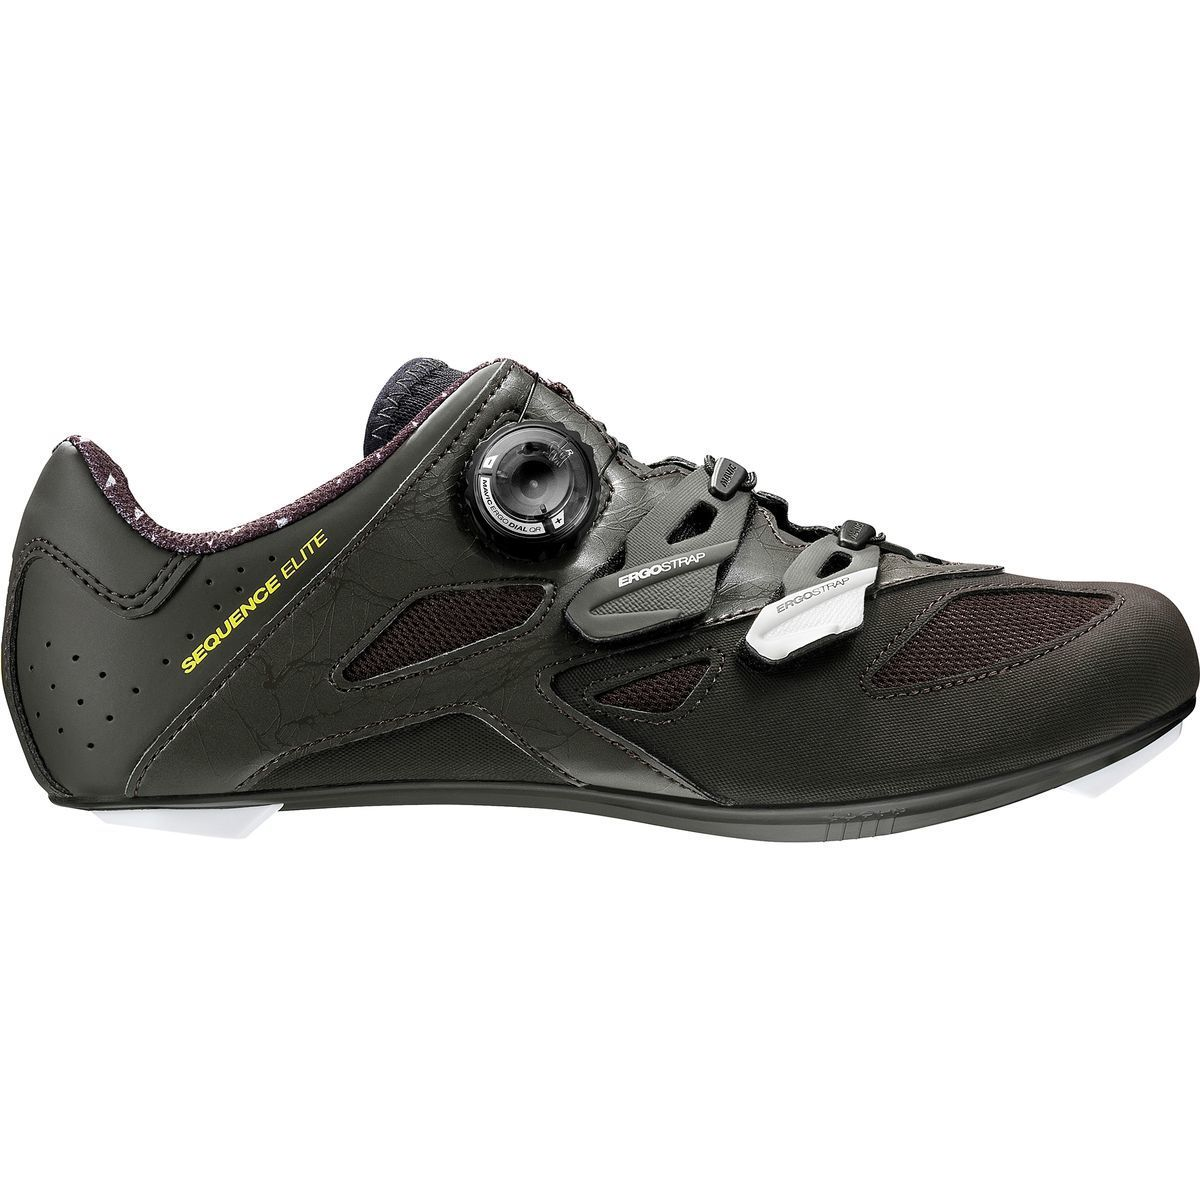 mavic sequence elite cycling shoe s competitive